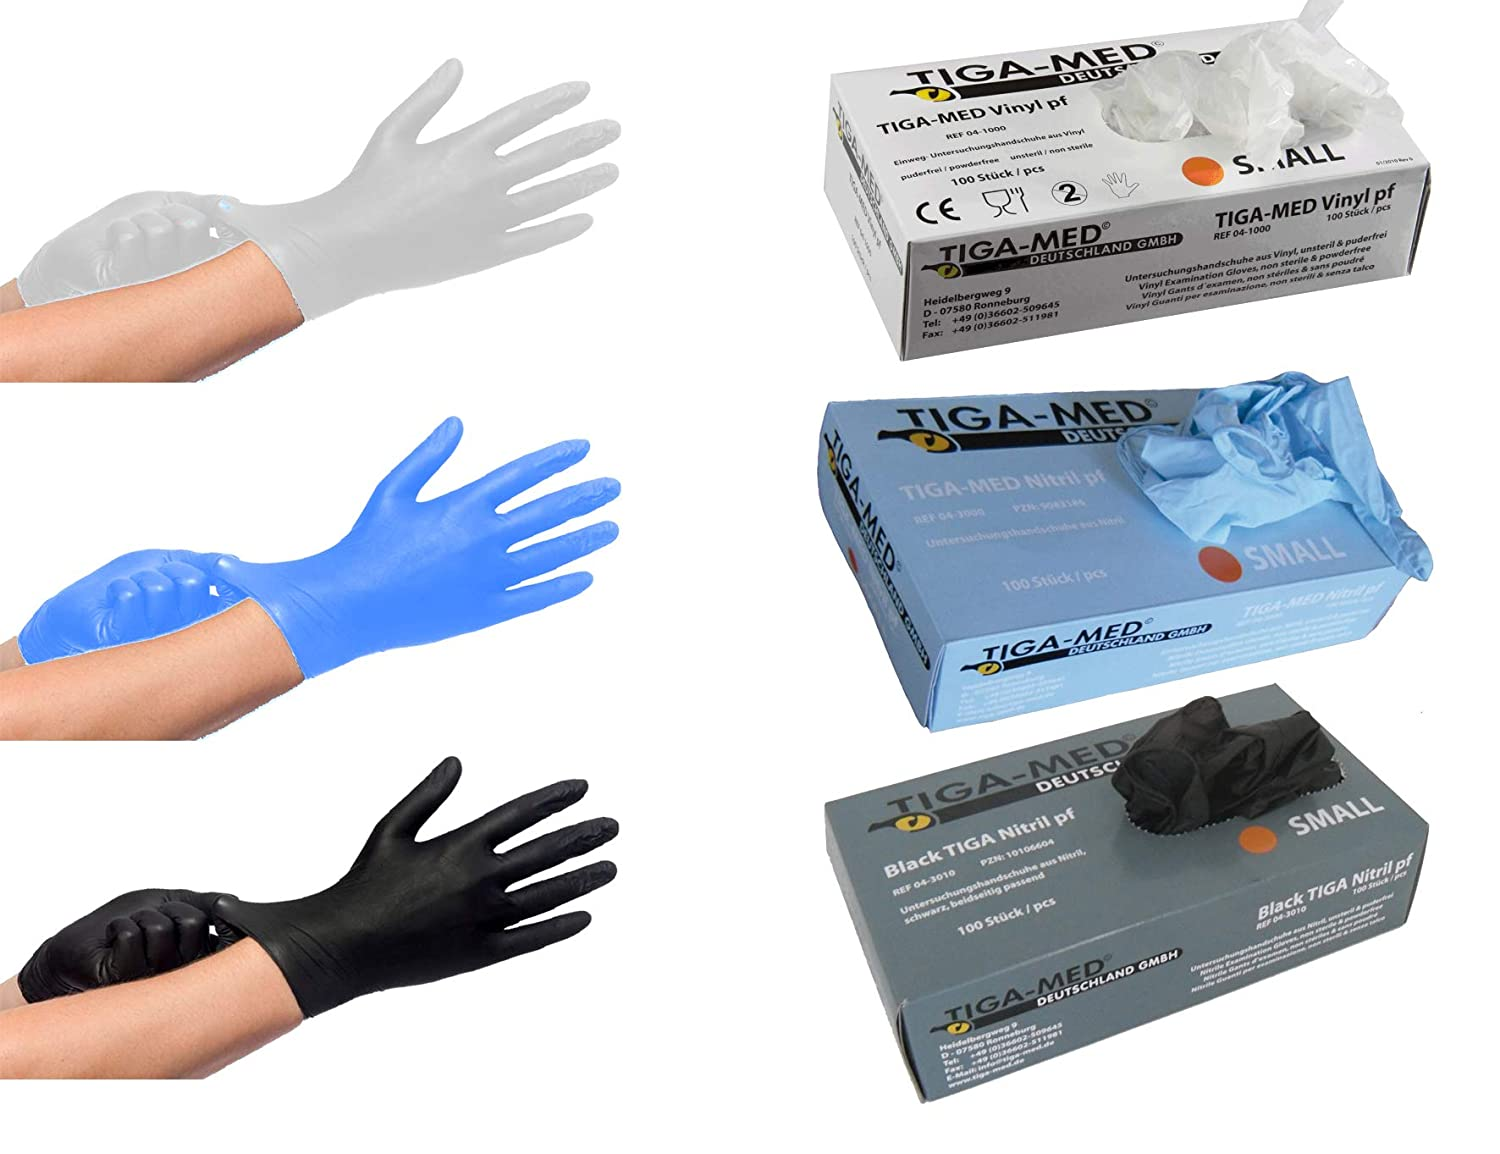 Tiga-Med Nitrile Gloves Powder Free Size Extra Large 5 x 100 Pieces Single Use Blue Latex Free by Tiga-Med